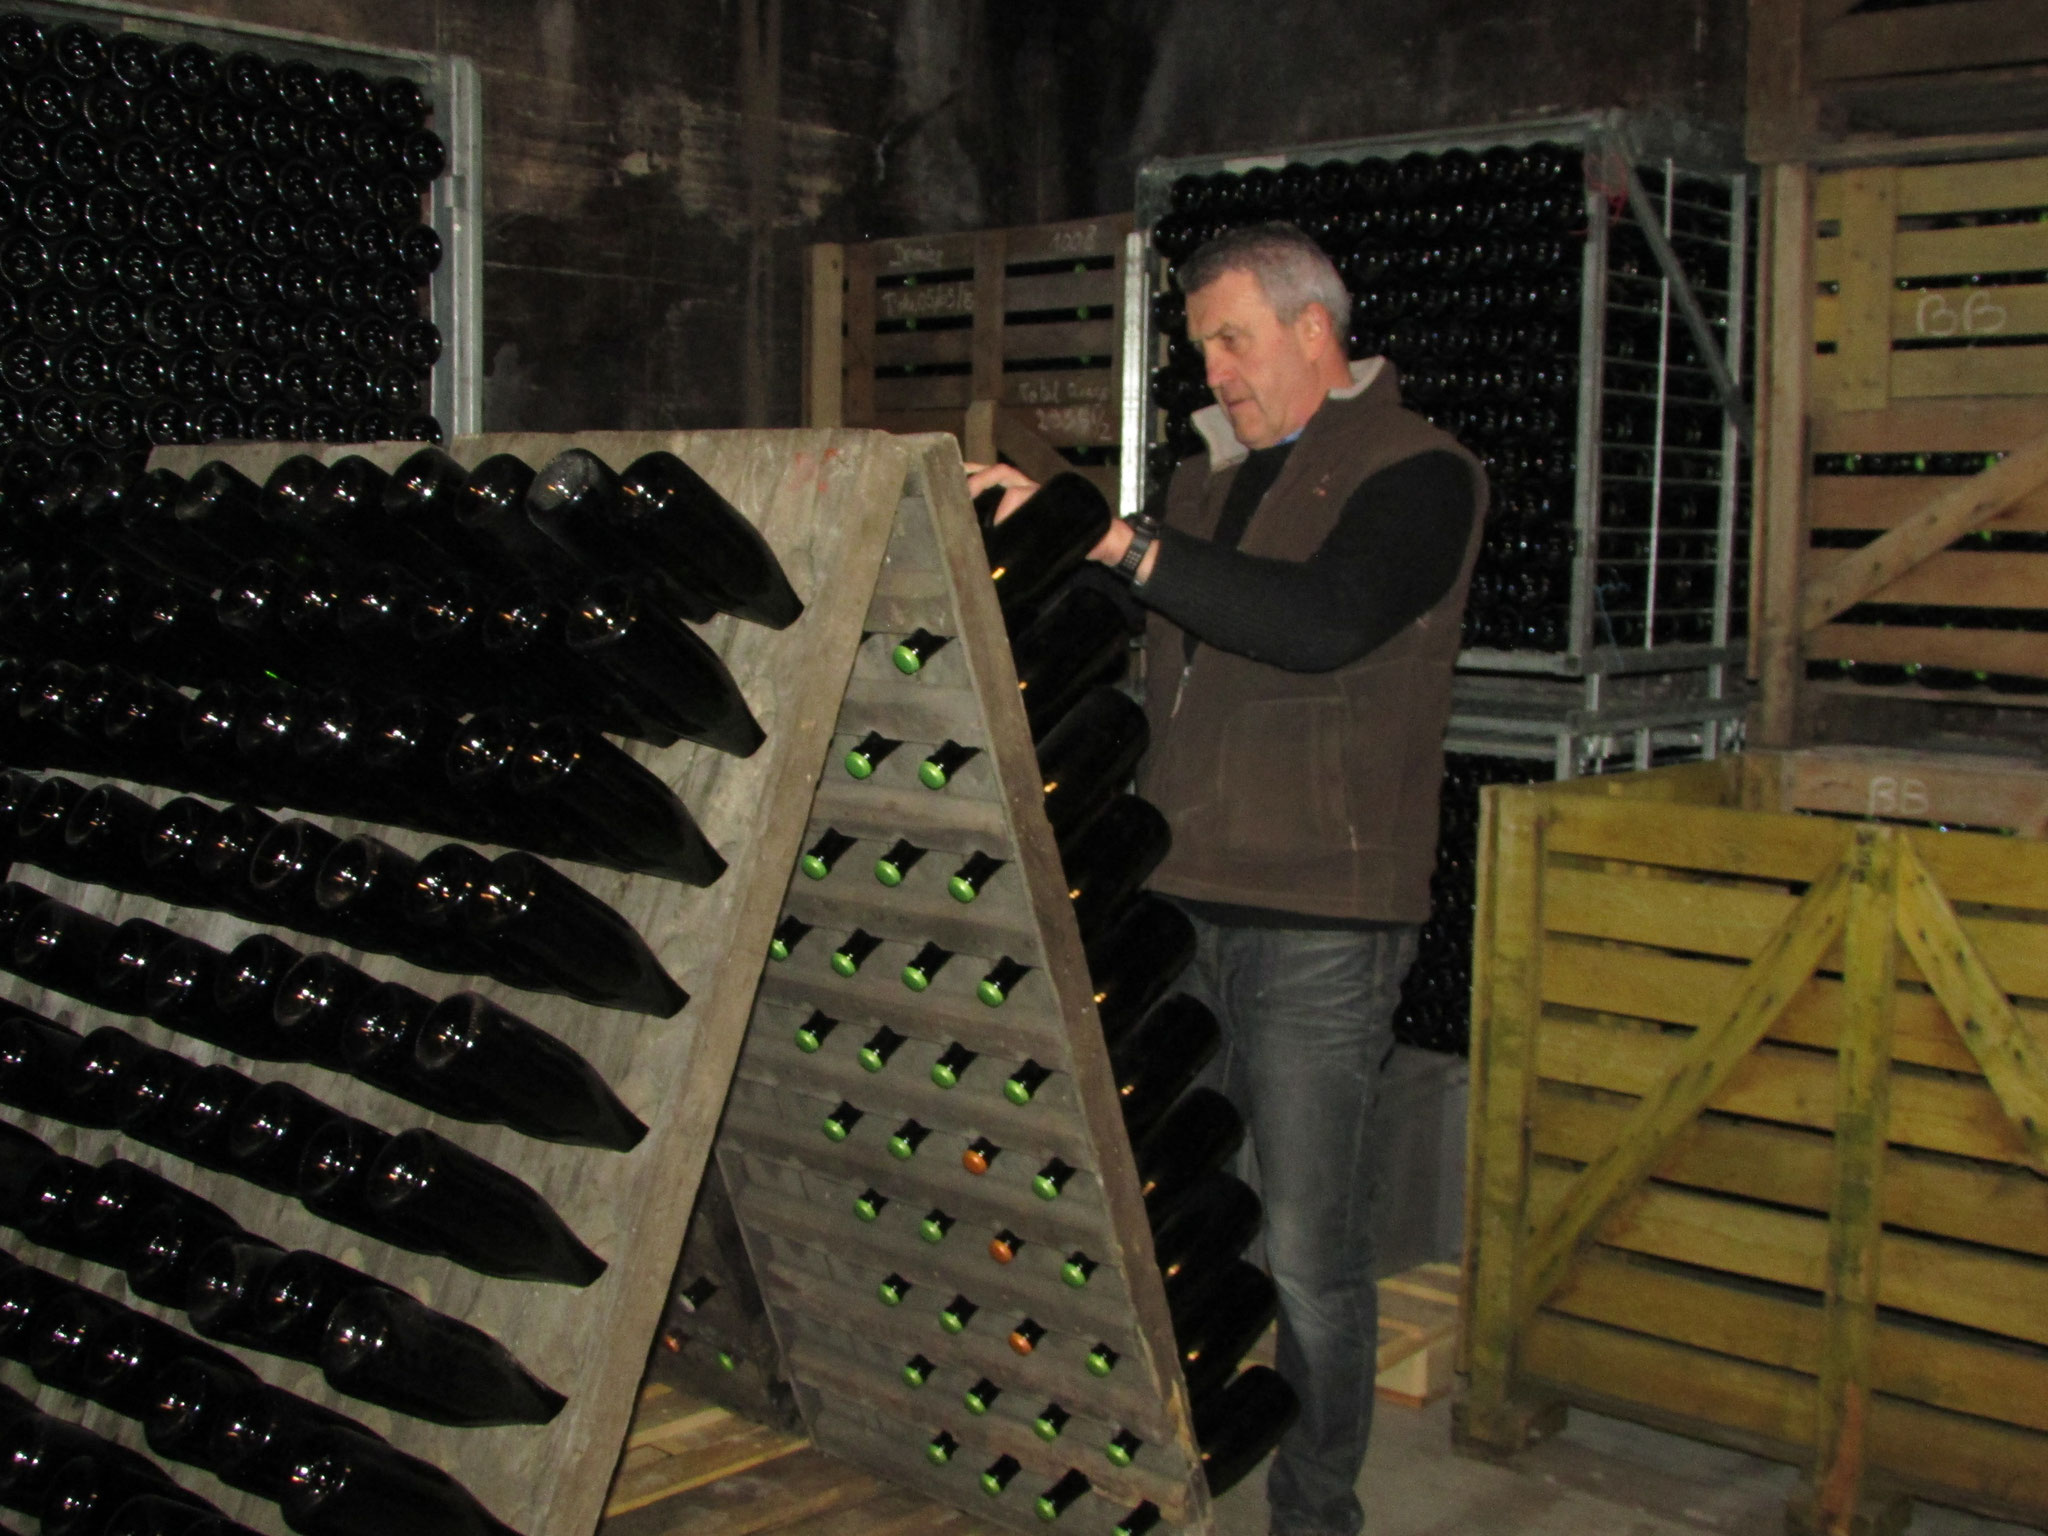 Bottles rotation is manual for special vintages